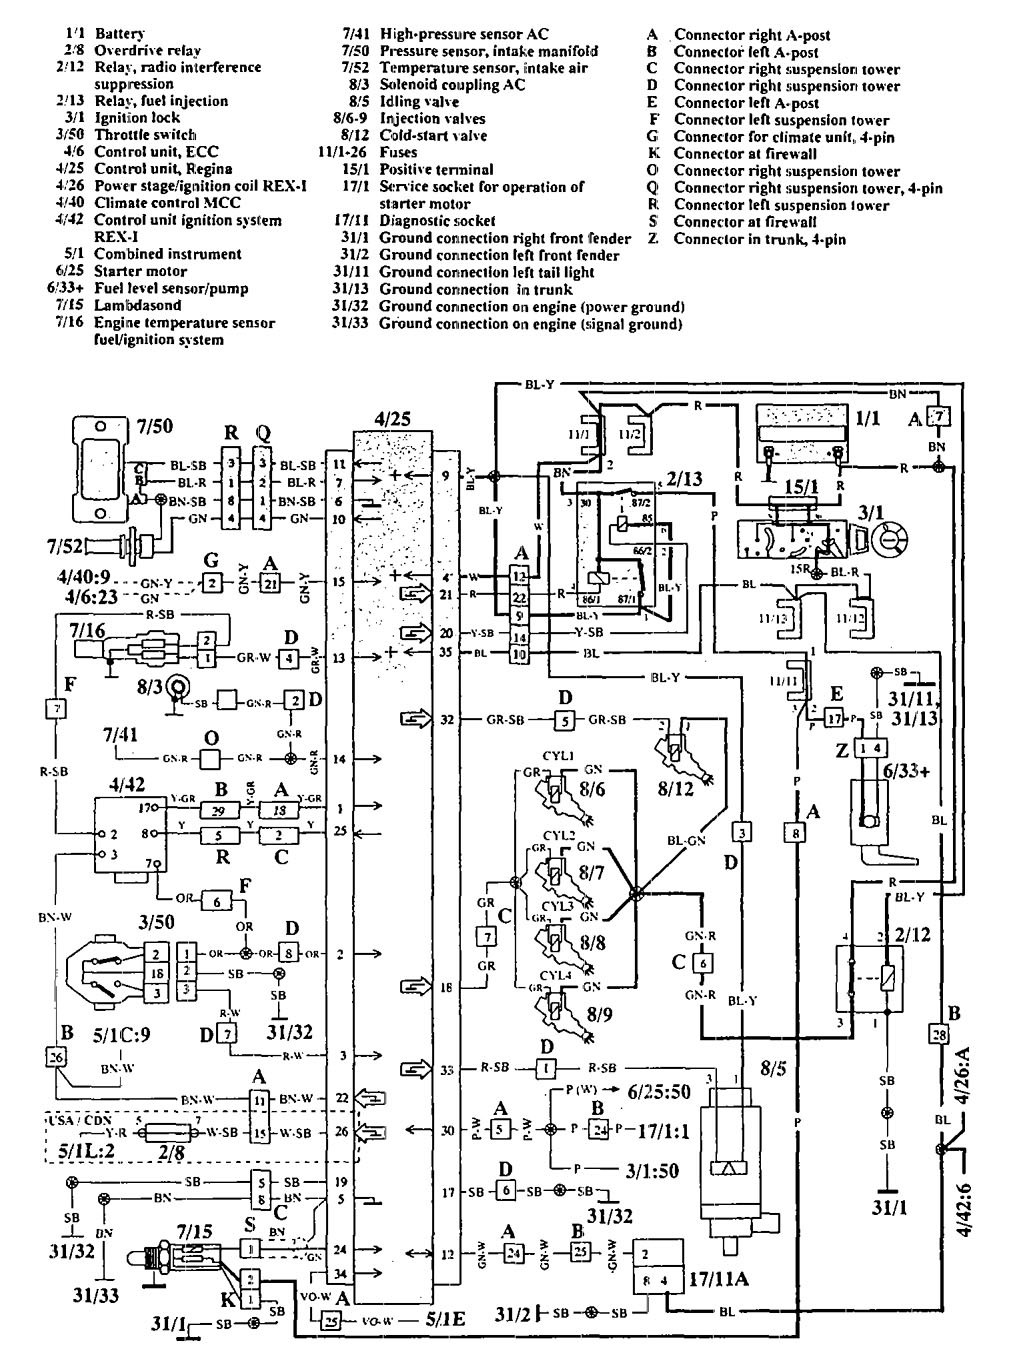 Volvo 940 Wiring Diagram 1997 : 29 Wiring Diagram Images